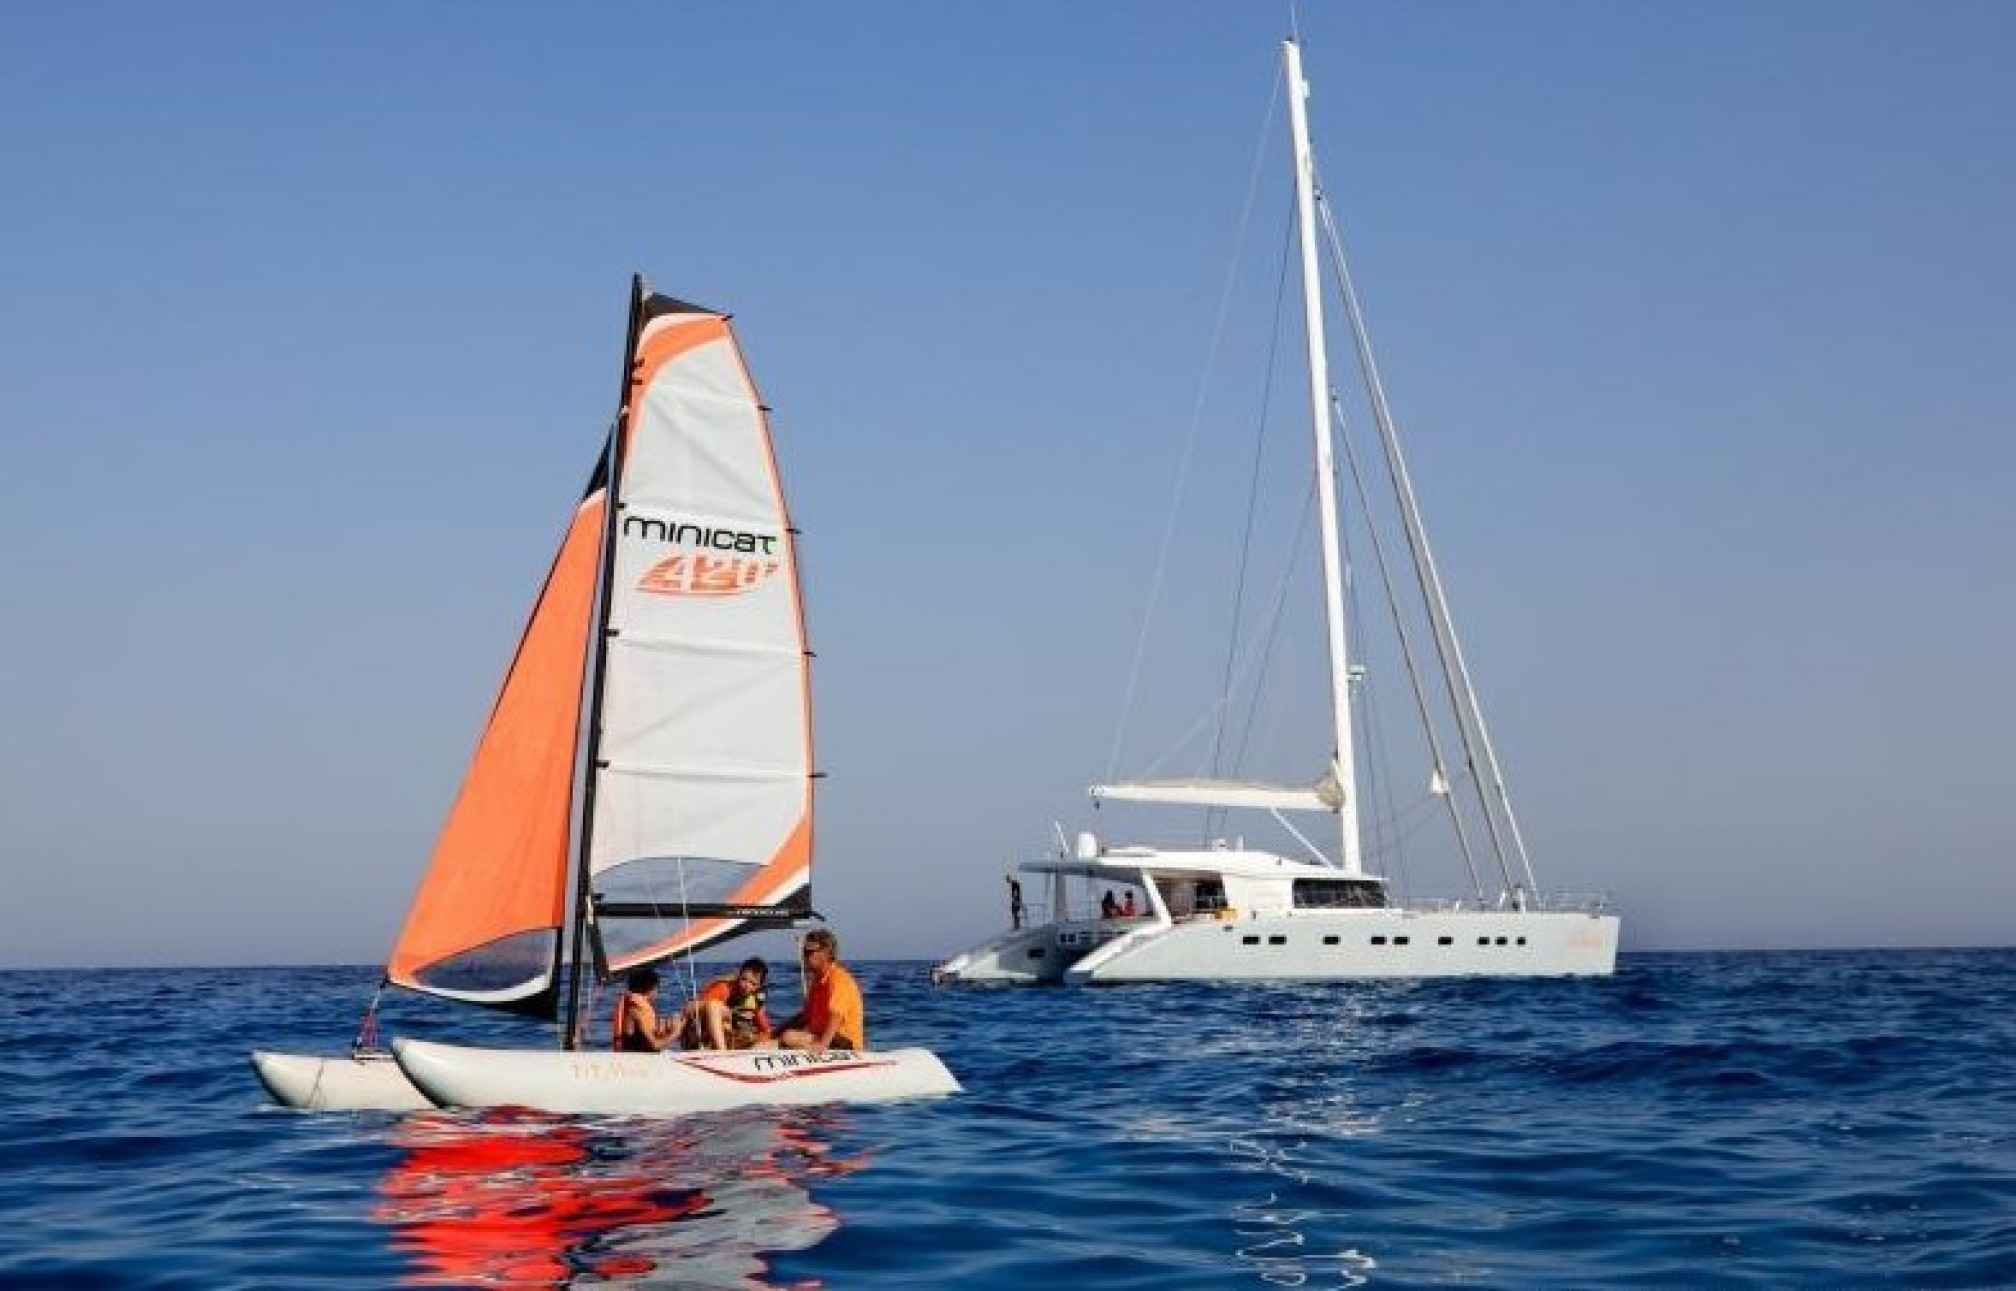 MAITA'I Luxury Catamaran Sailing